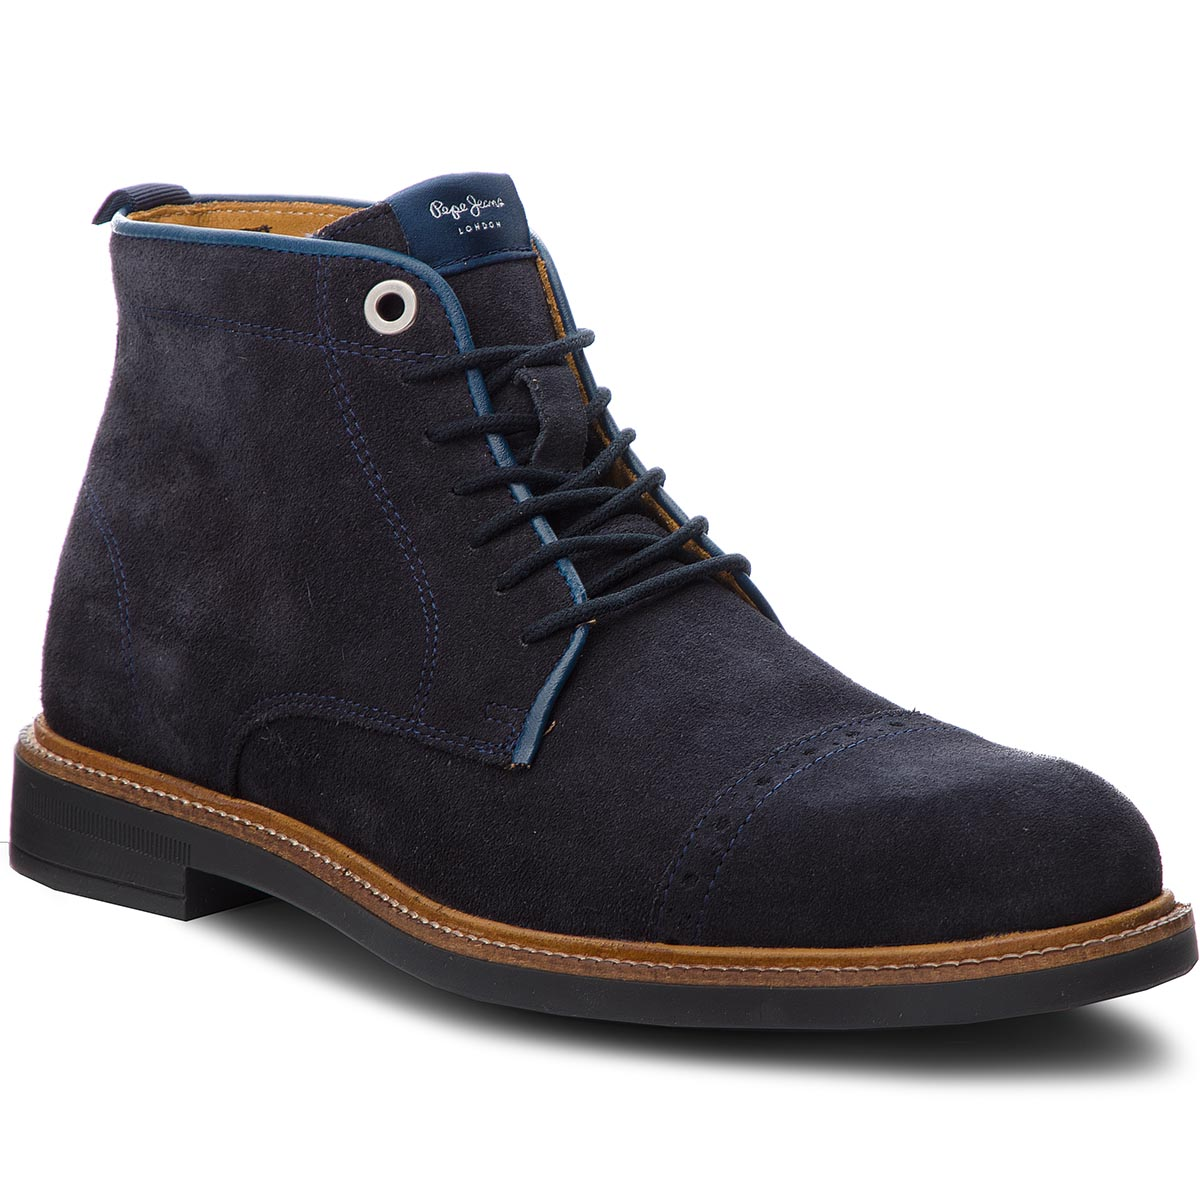 Ghete PEPE JEANS - Axel Boot PMS50169 Navy 595